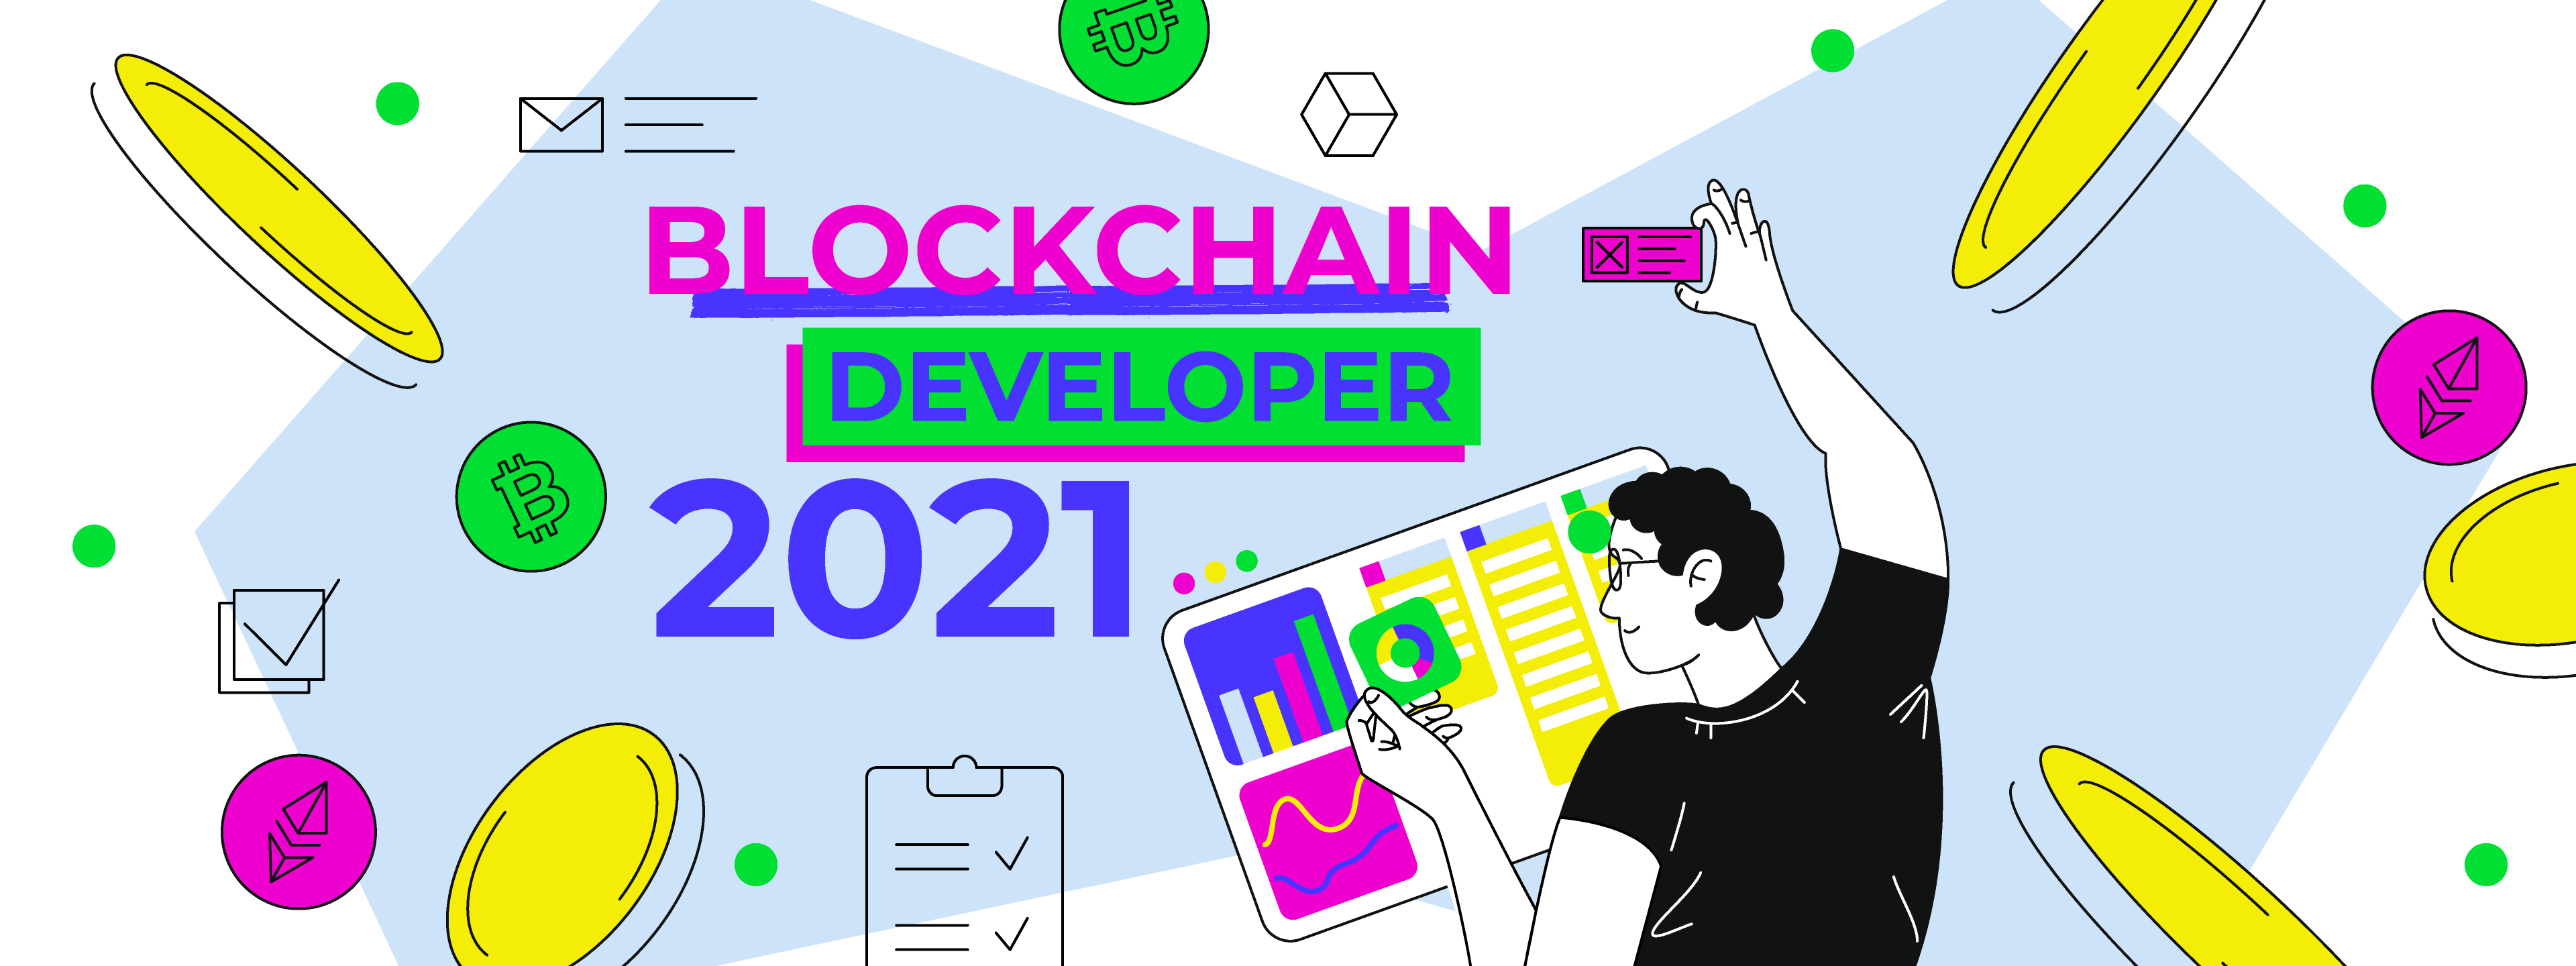 Blockchain Developers: The Hottest Jobs for 2021